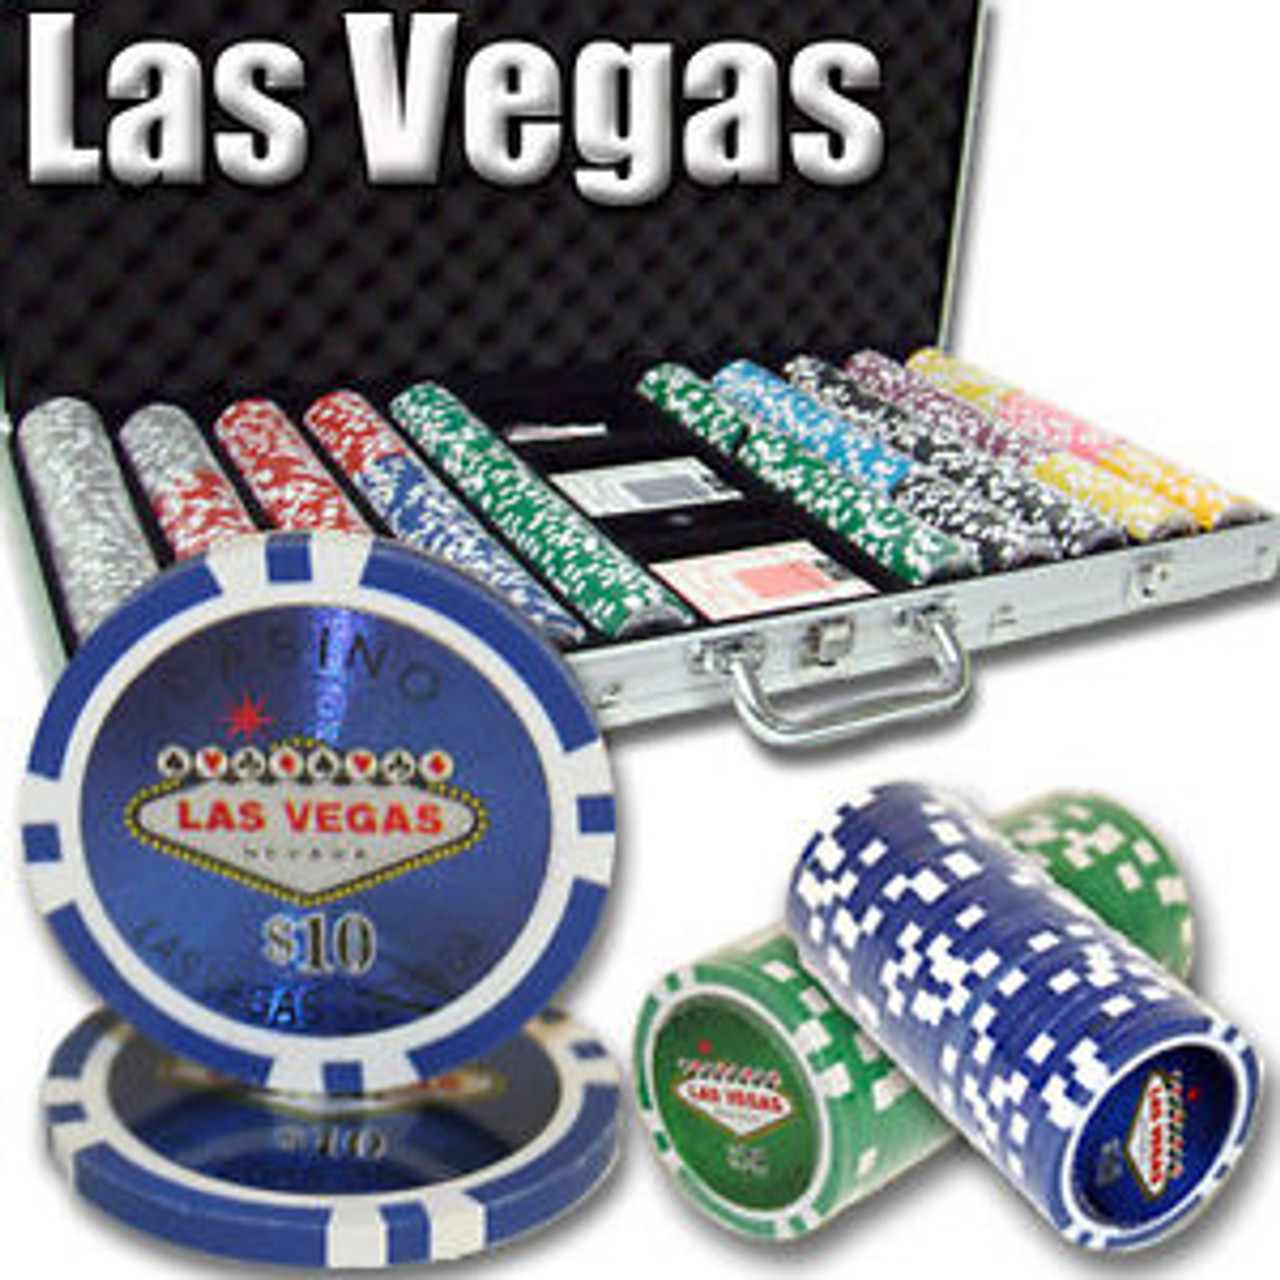 Poker Chip Set Las Vegas Casino 500pc 11.5g with Case & FREE OFFER